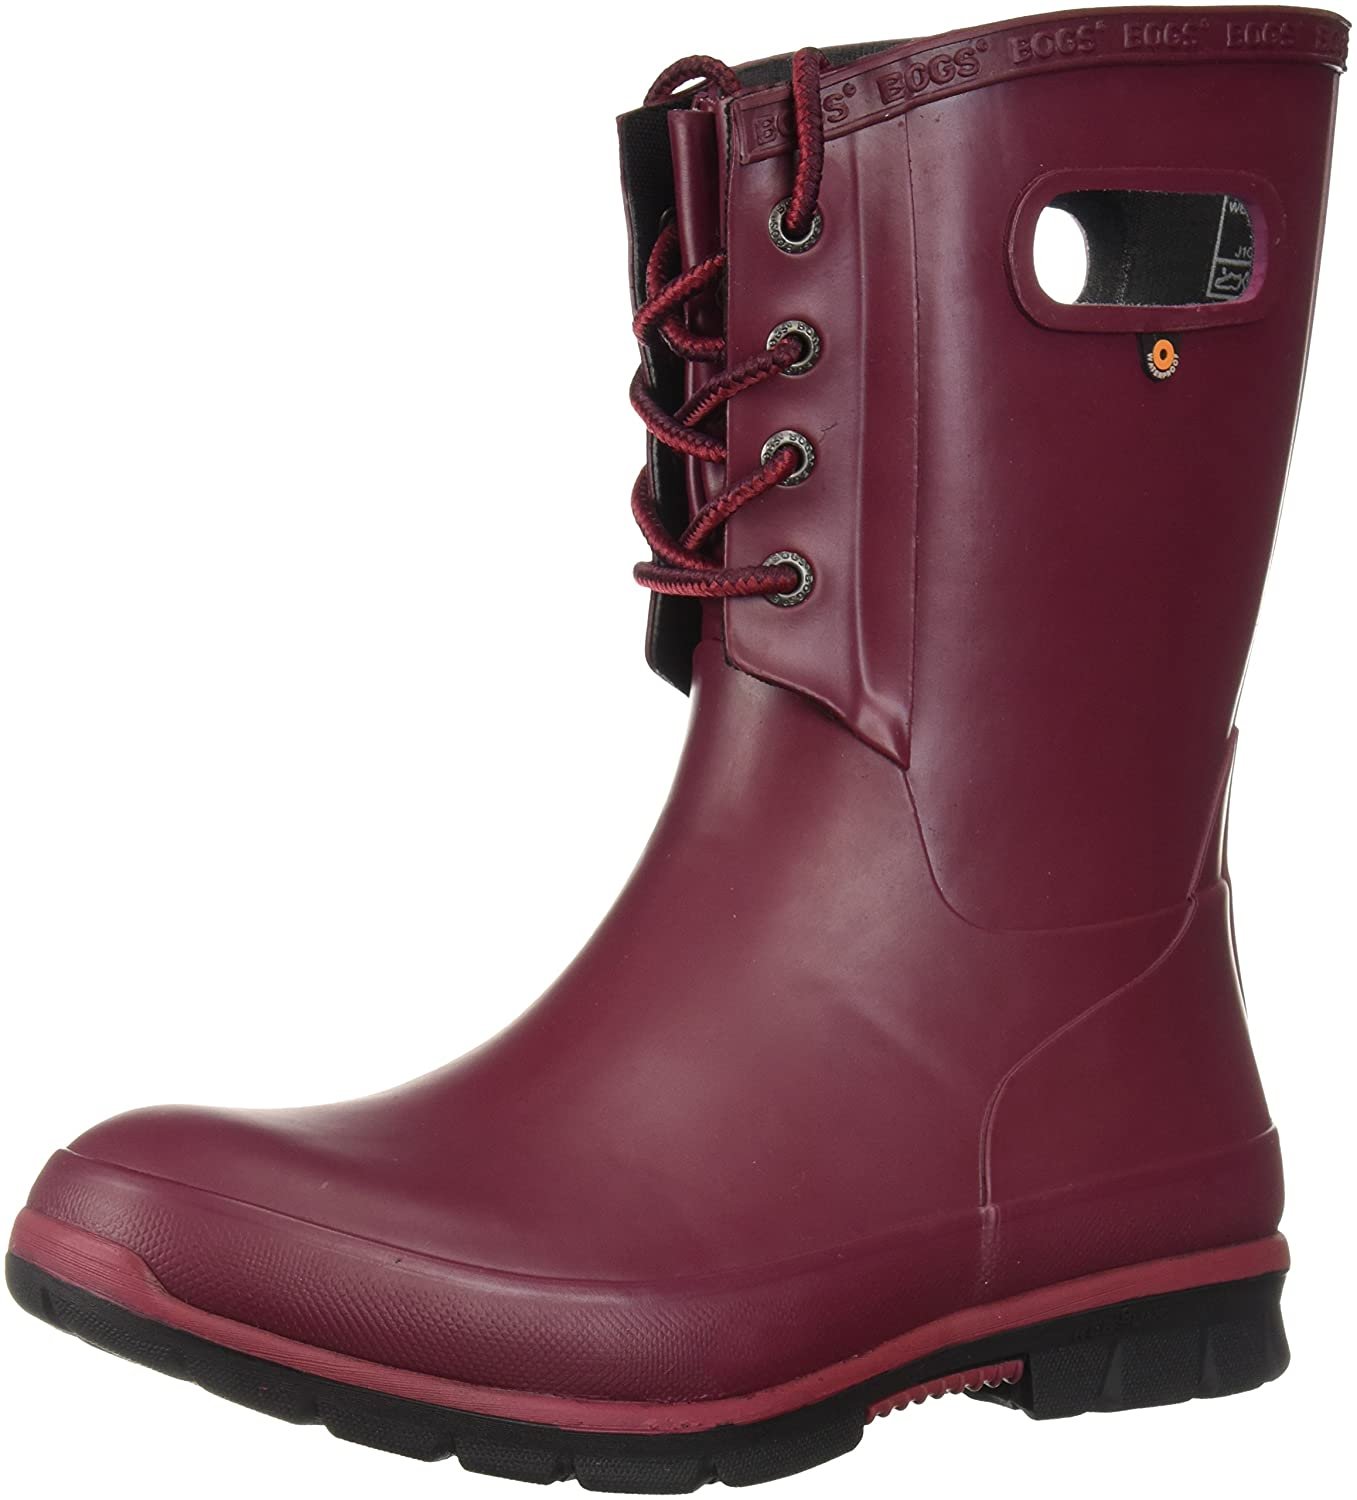 Bogs Women's Amanda 4-Eye Solid Rain Boot B073PZWGZ8 8 B(M) US|Burgundy